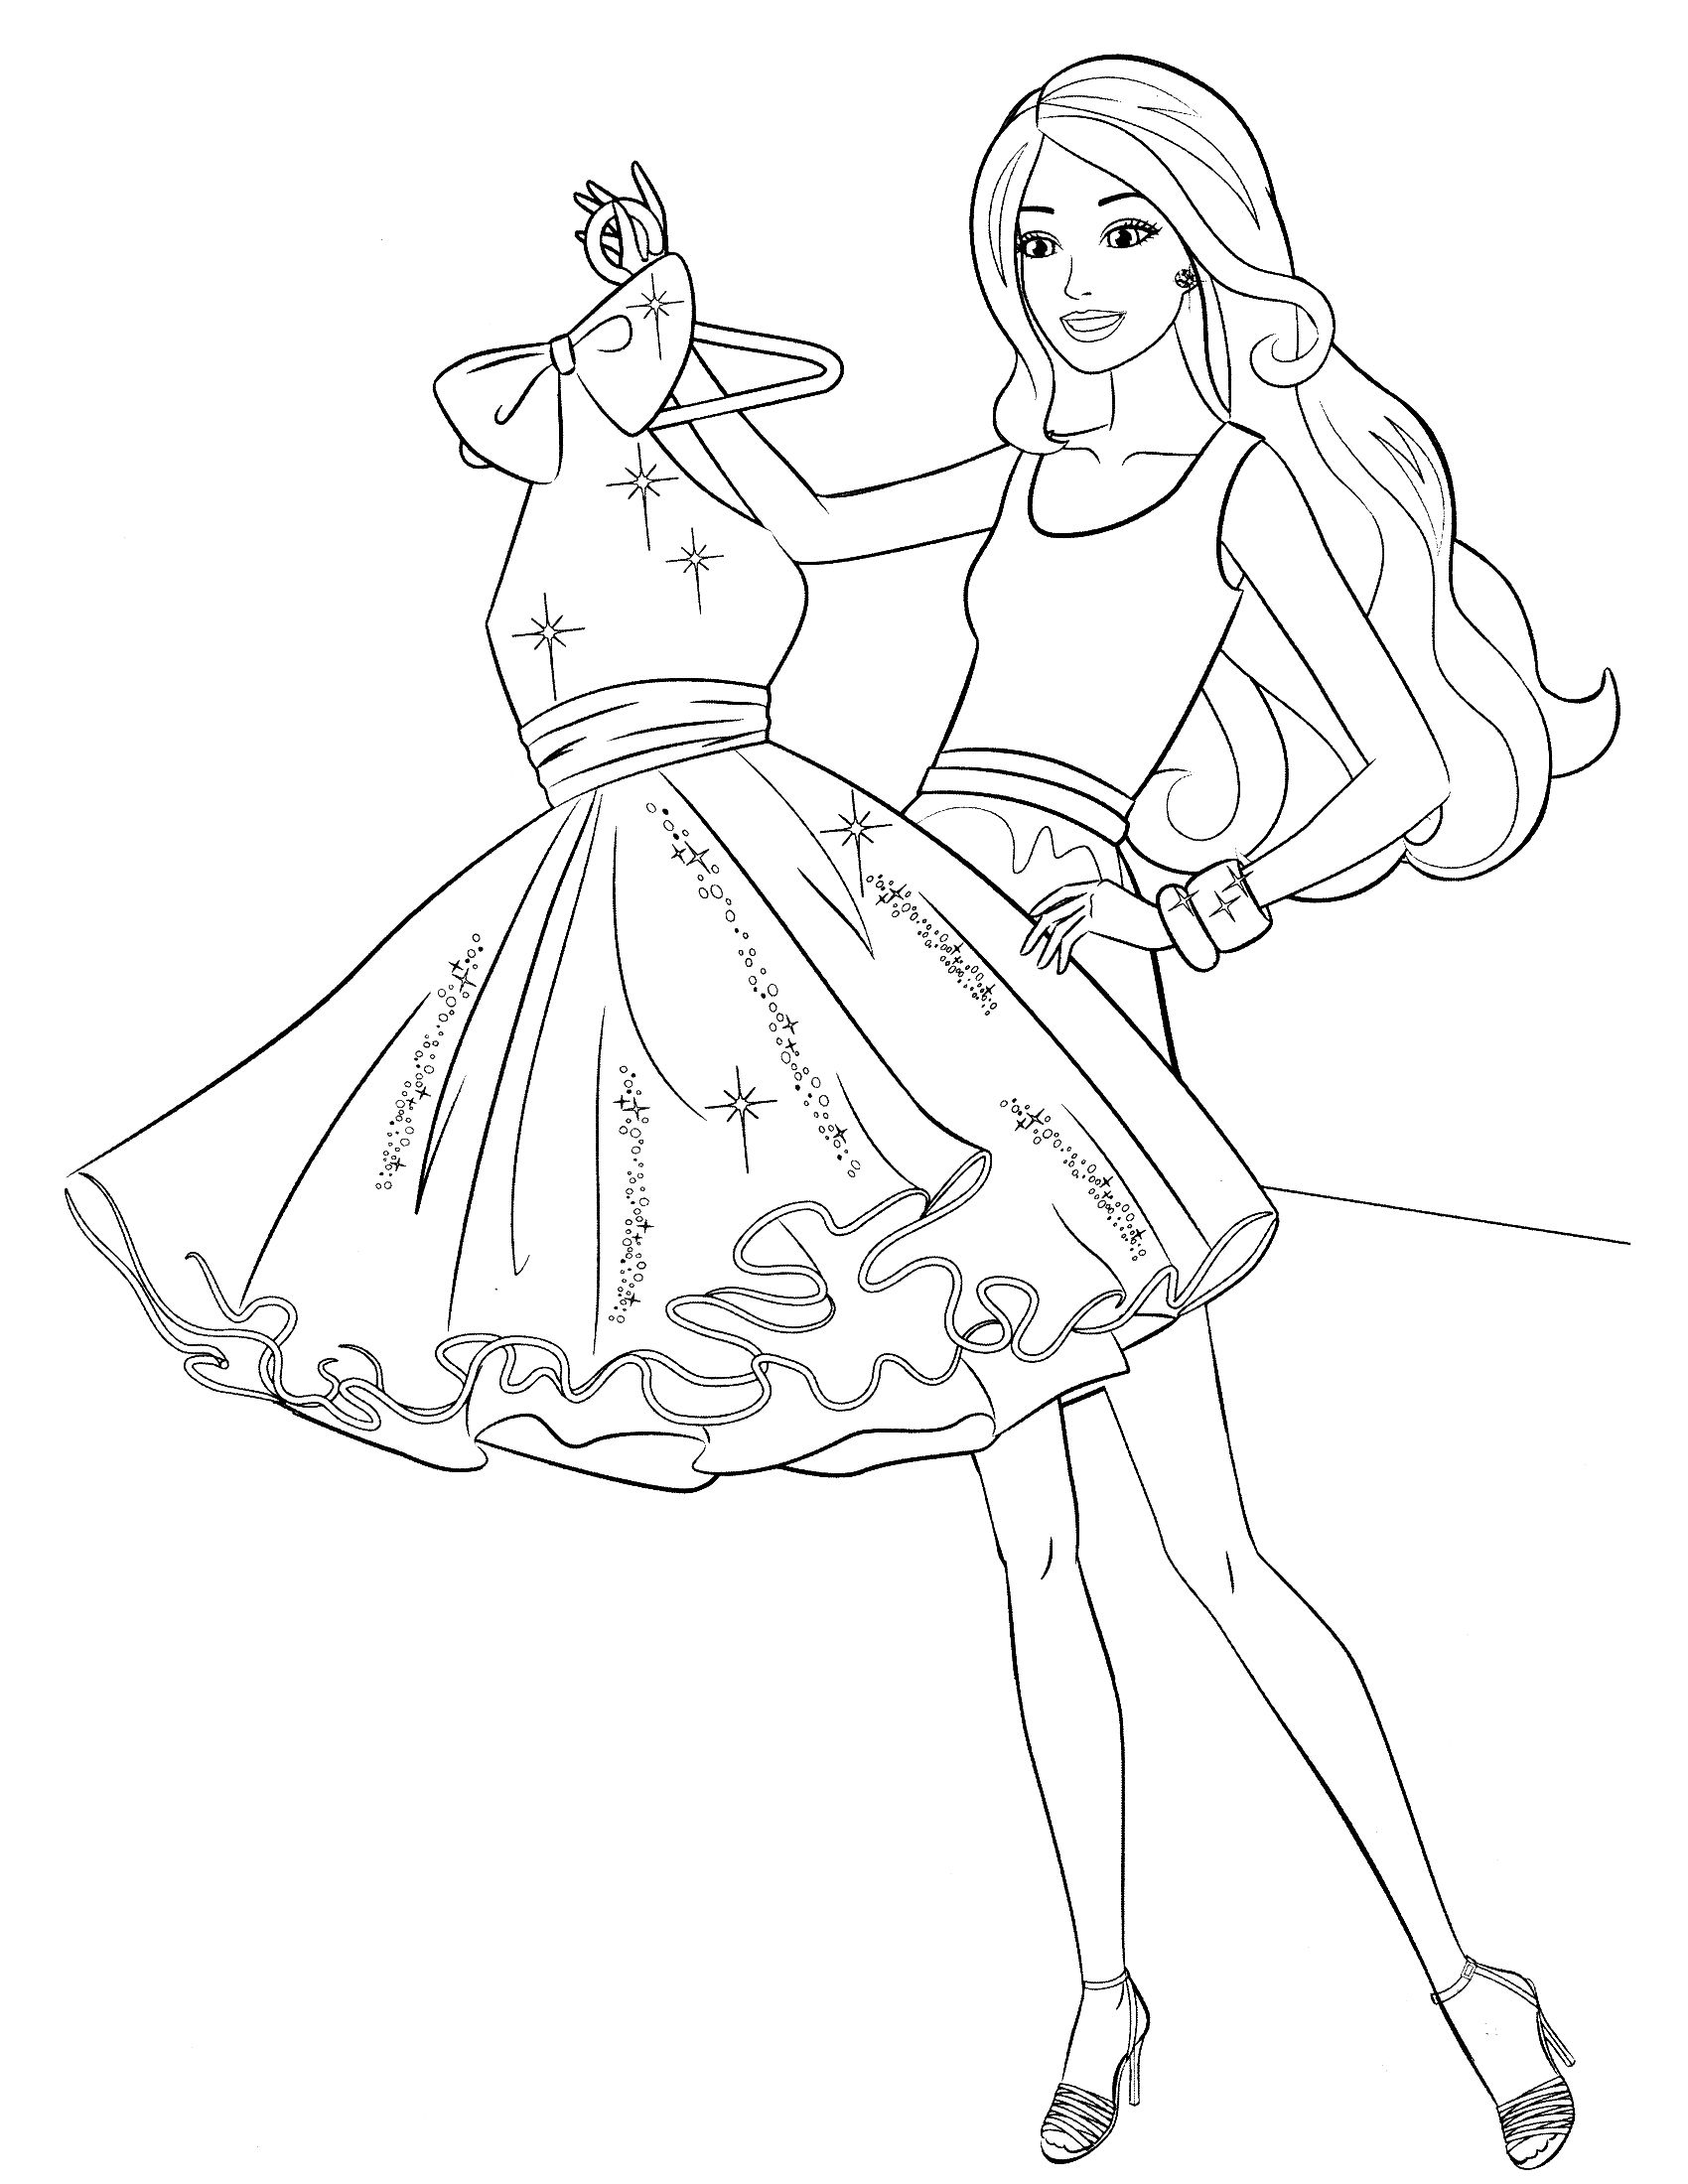 Barbie Dress Coloring Pages Coloring Pages Barbie Coloring Pages Princess Coloring Pages Barbie Coloring